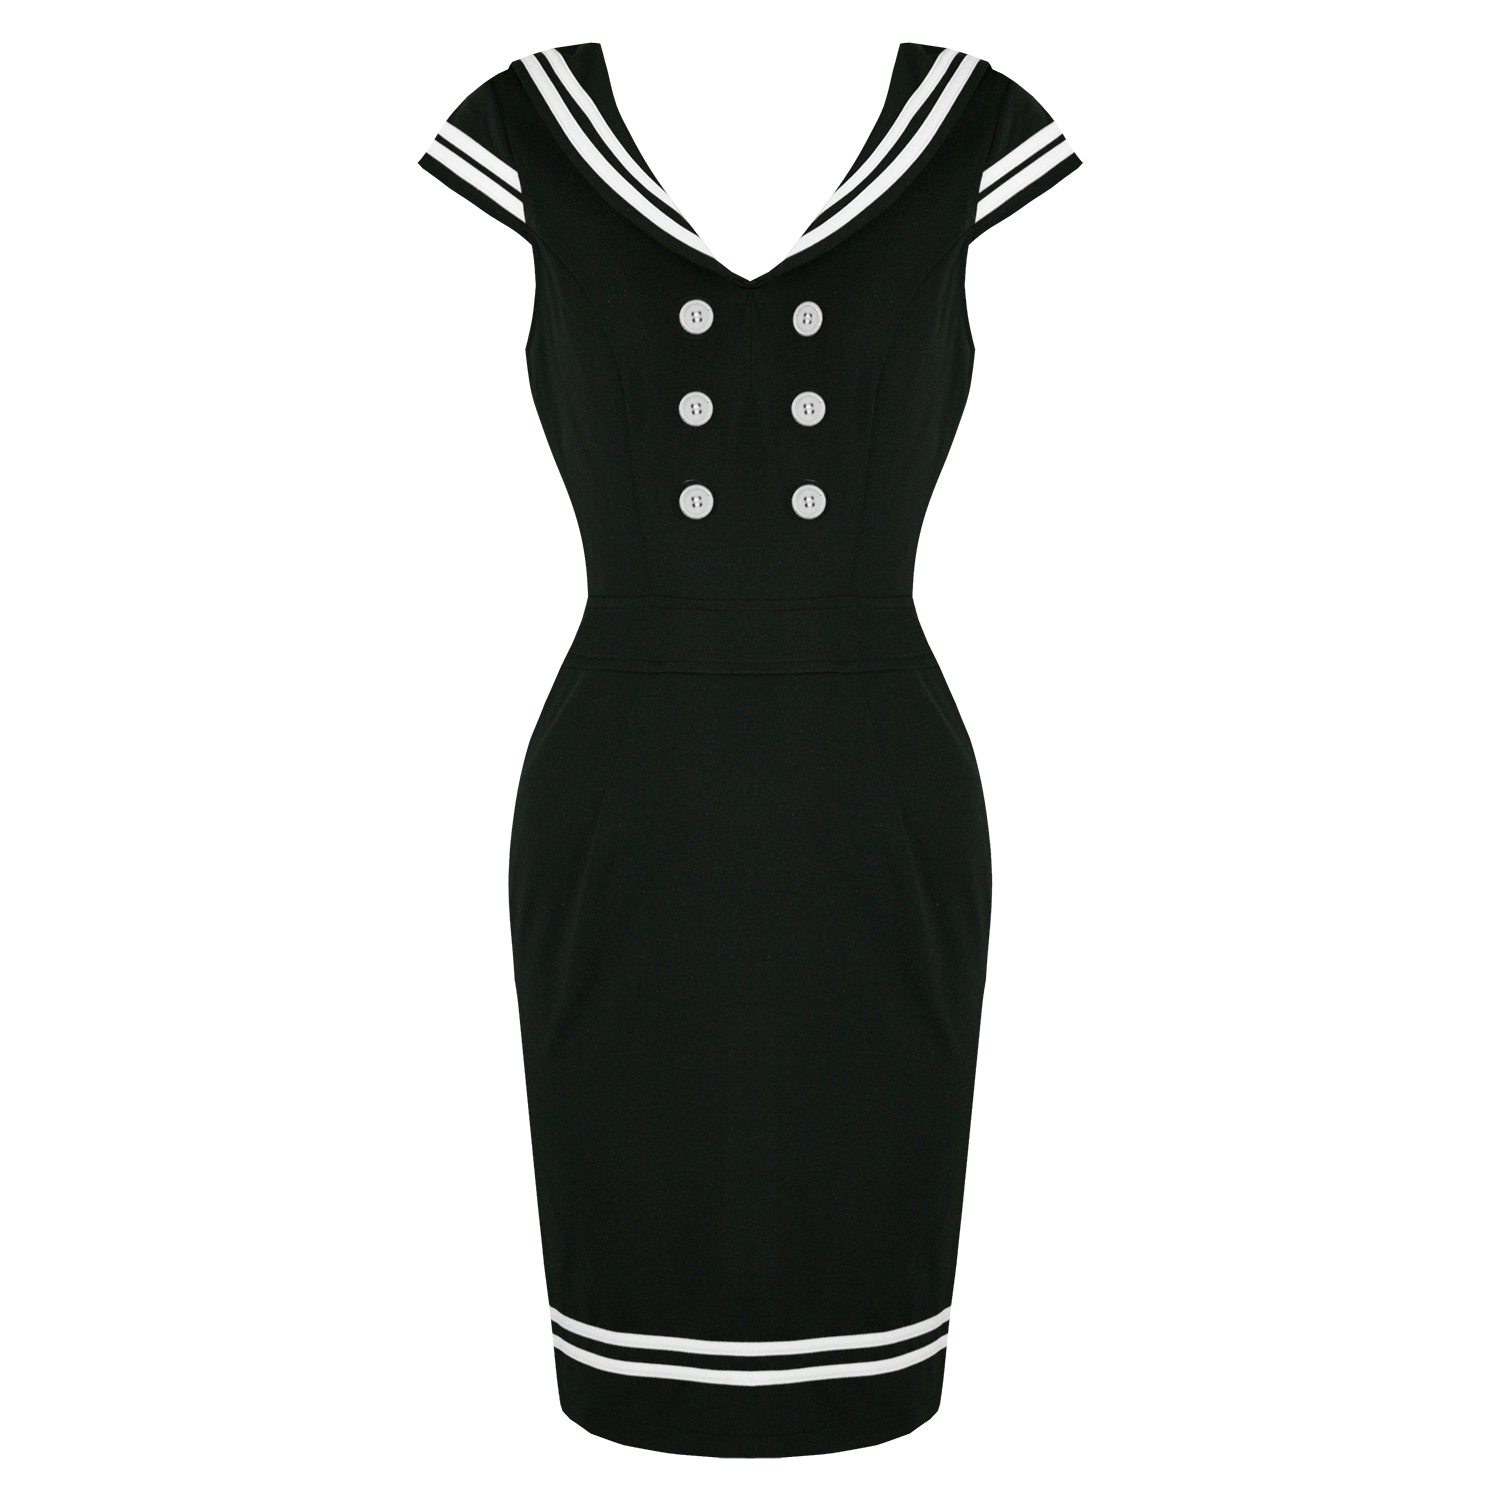 HELL-BUNNY-HORIZON-BLACK-NAUTICAL-SAILOR-GIRL-ROCKABILLY-VINTAGE-PENCIL-DRESS